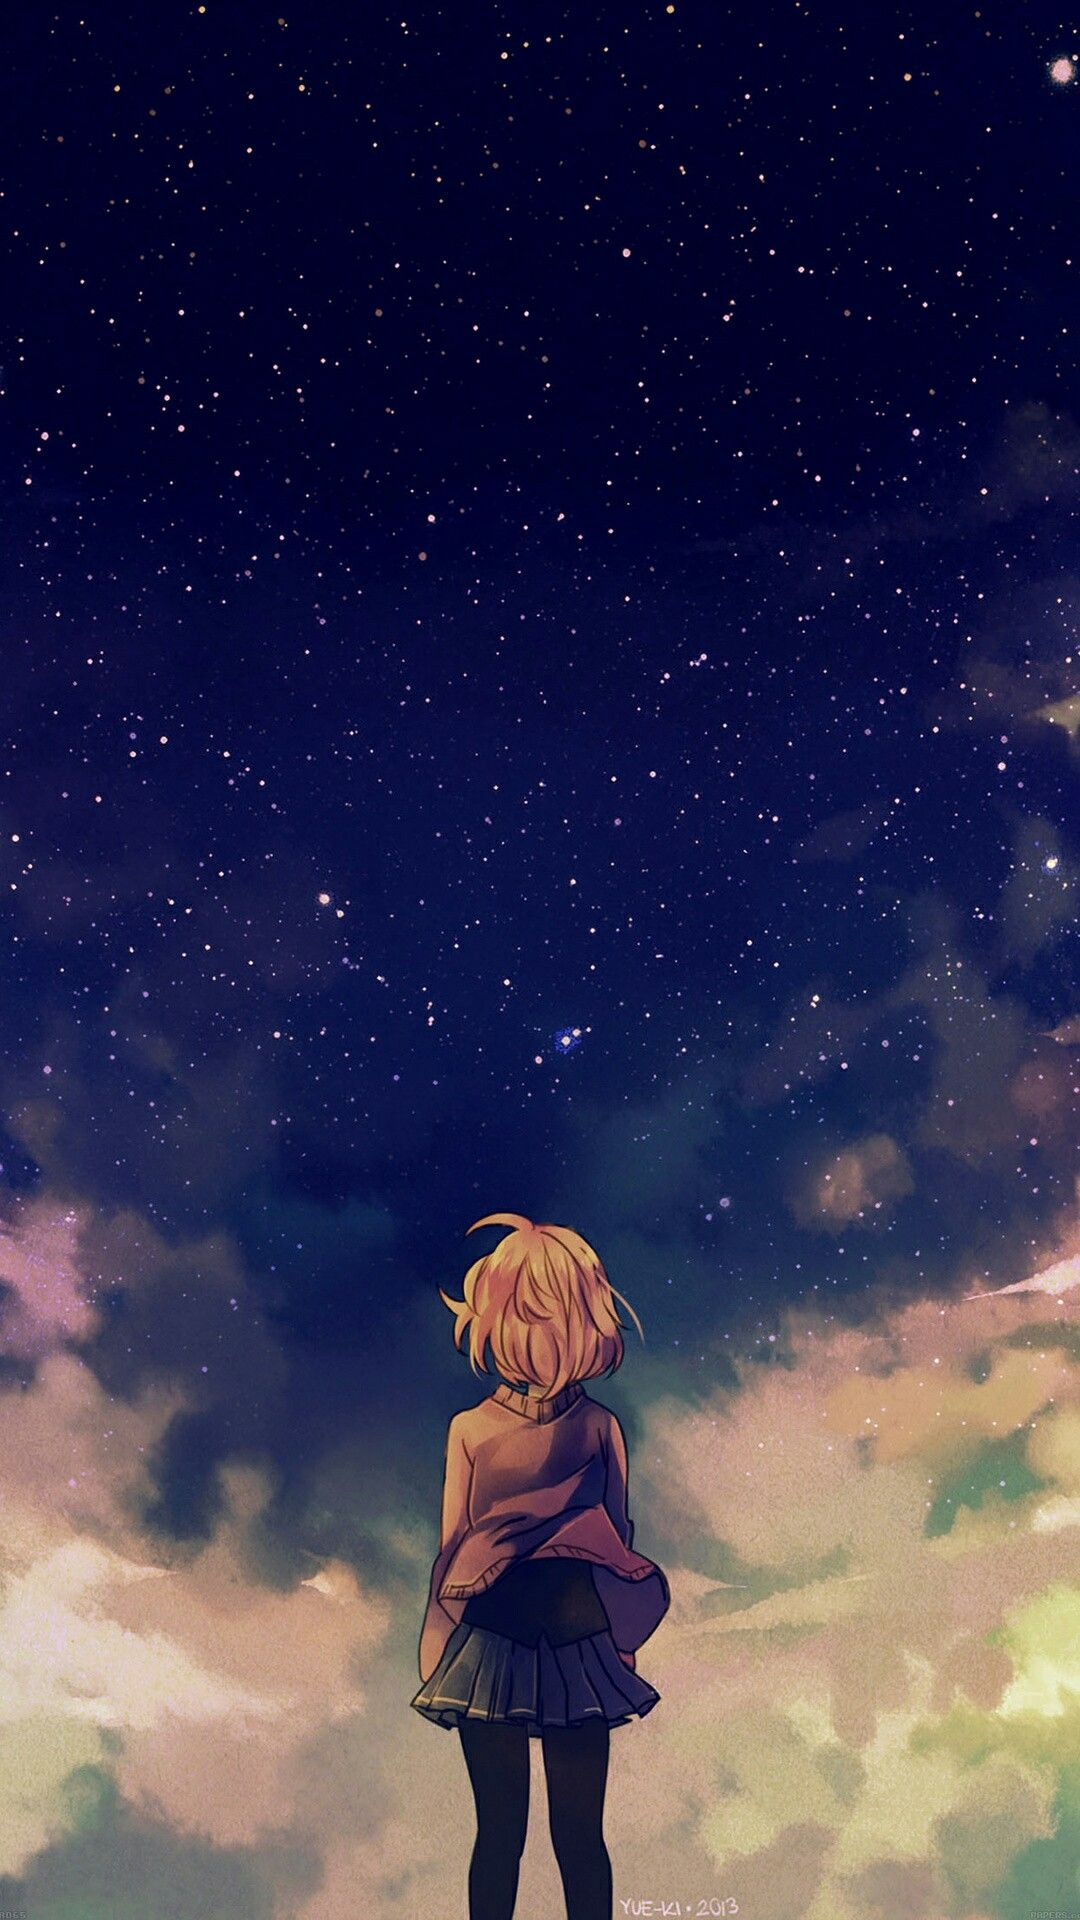 titan story | lost star ødyssey | pinterest | anime, wallpaper and